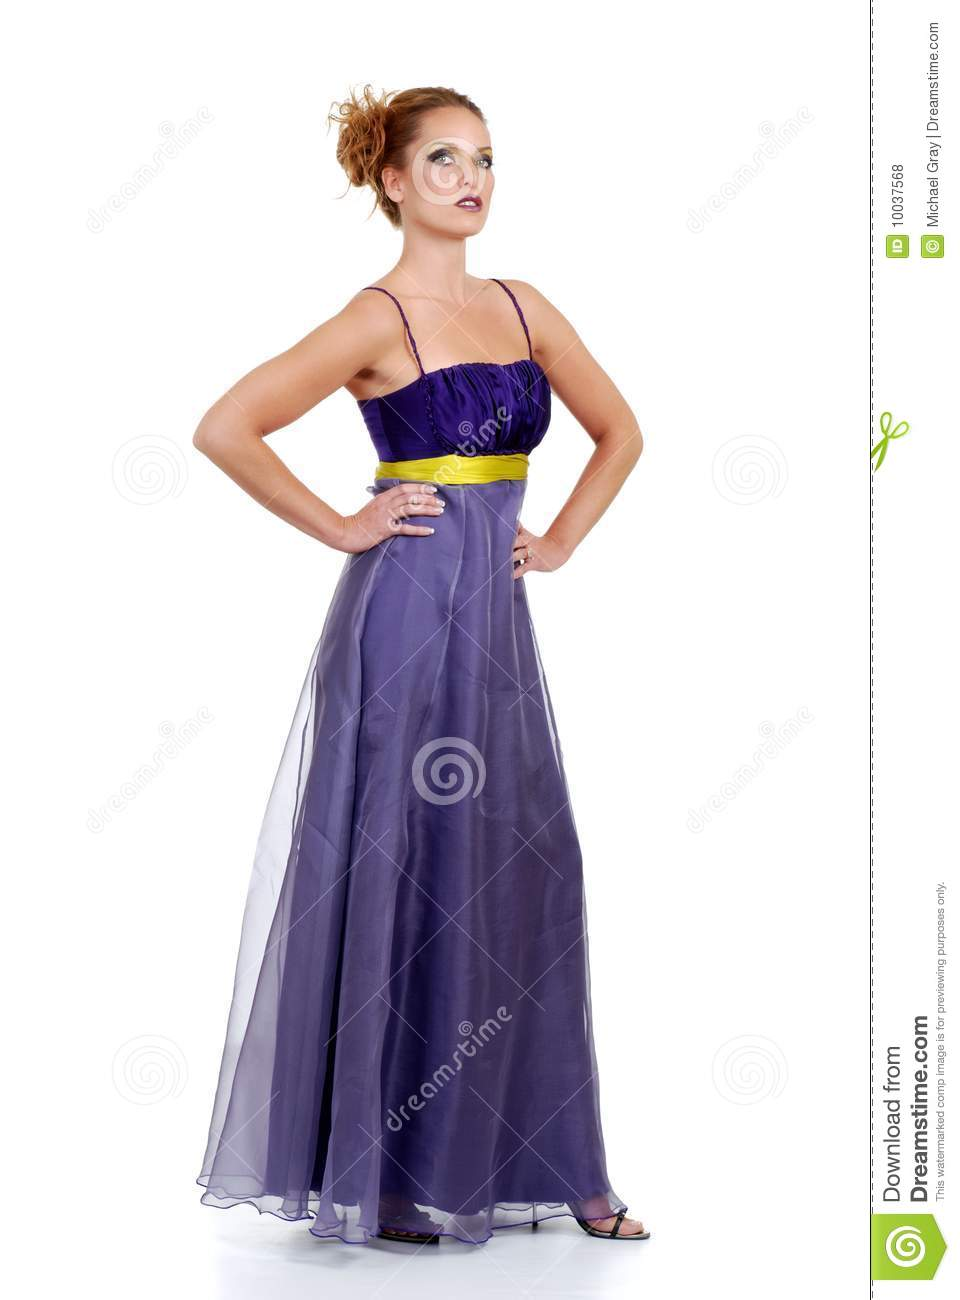 Woman Standing Wearing A Purple Lace Dress Royalty Free